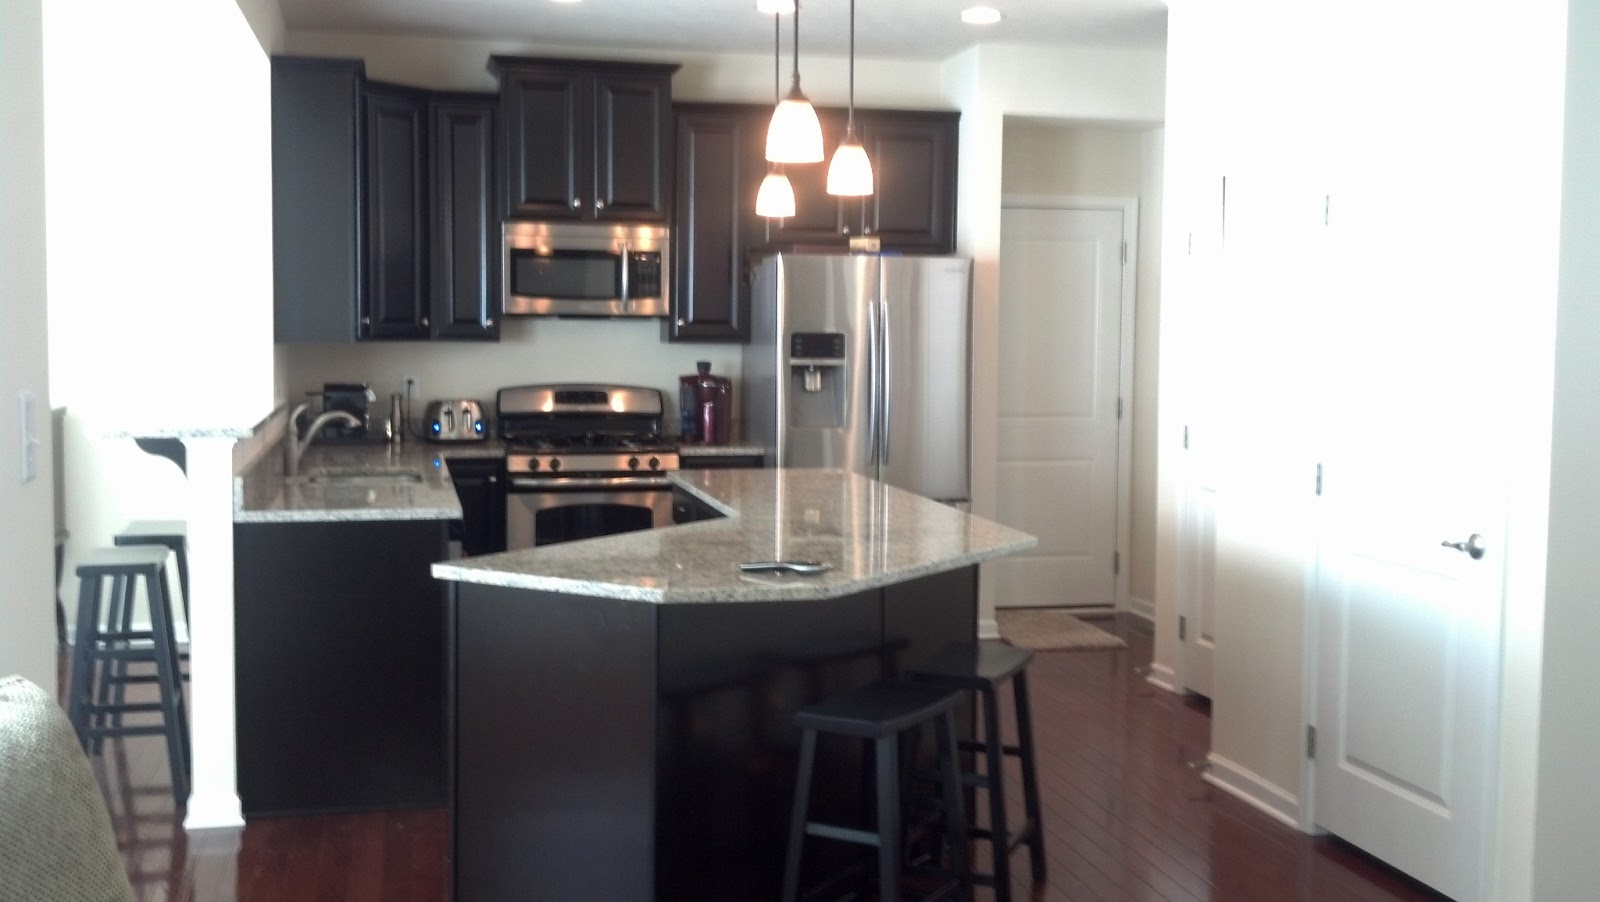 Kitchen Island Overhang For Stools Savoy Ryan Home : Kitchen Pics Espresso Cab & St. Cecilia